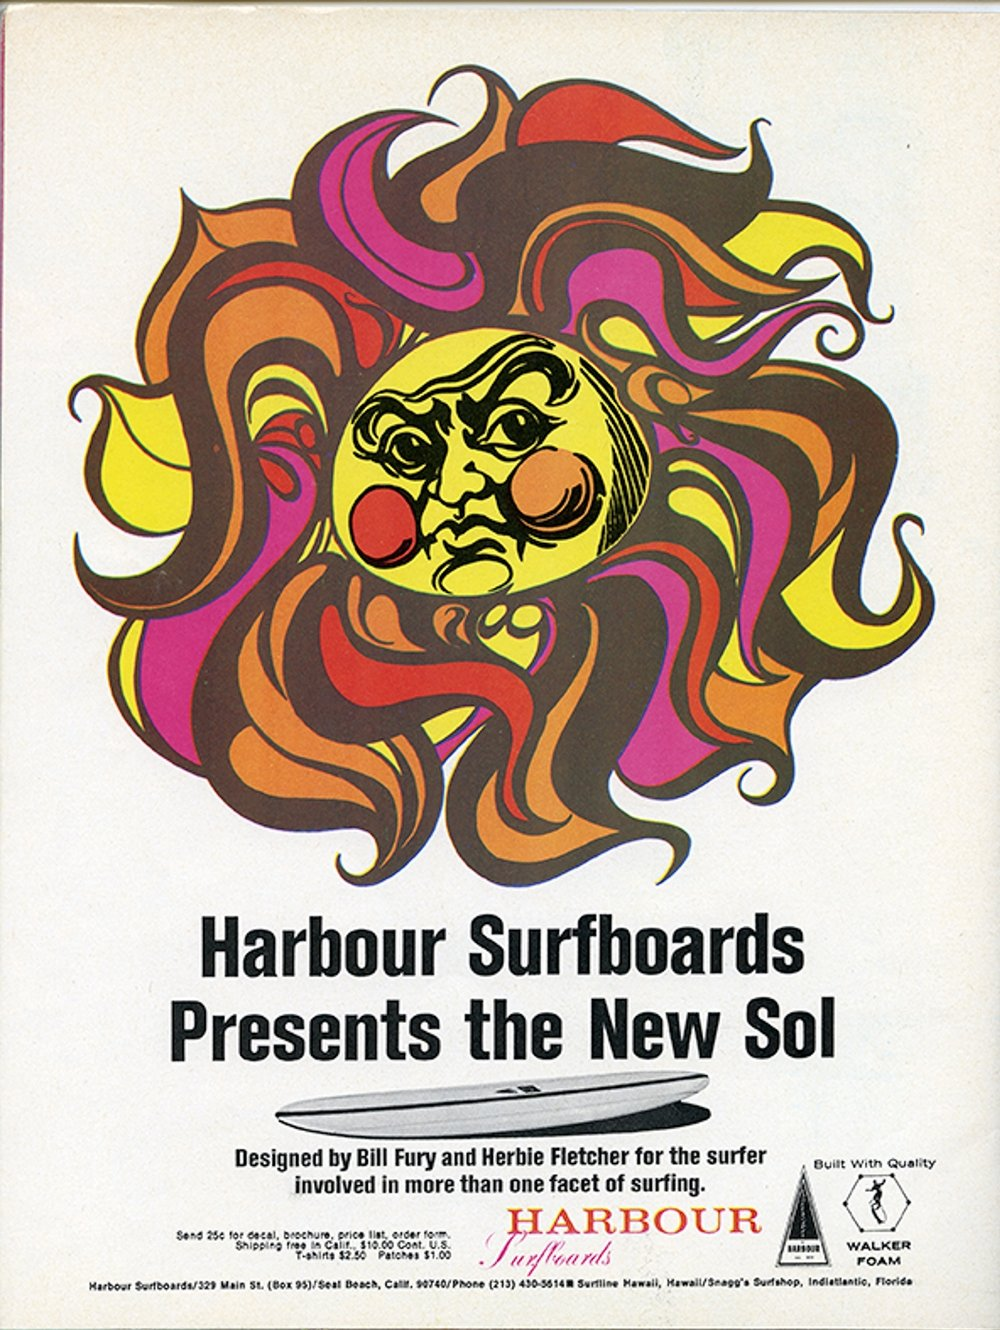 Harbour New Sol: Sagas of Shred